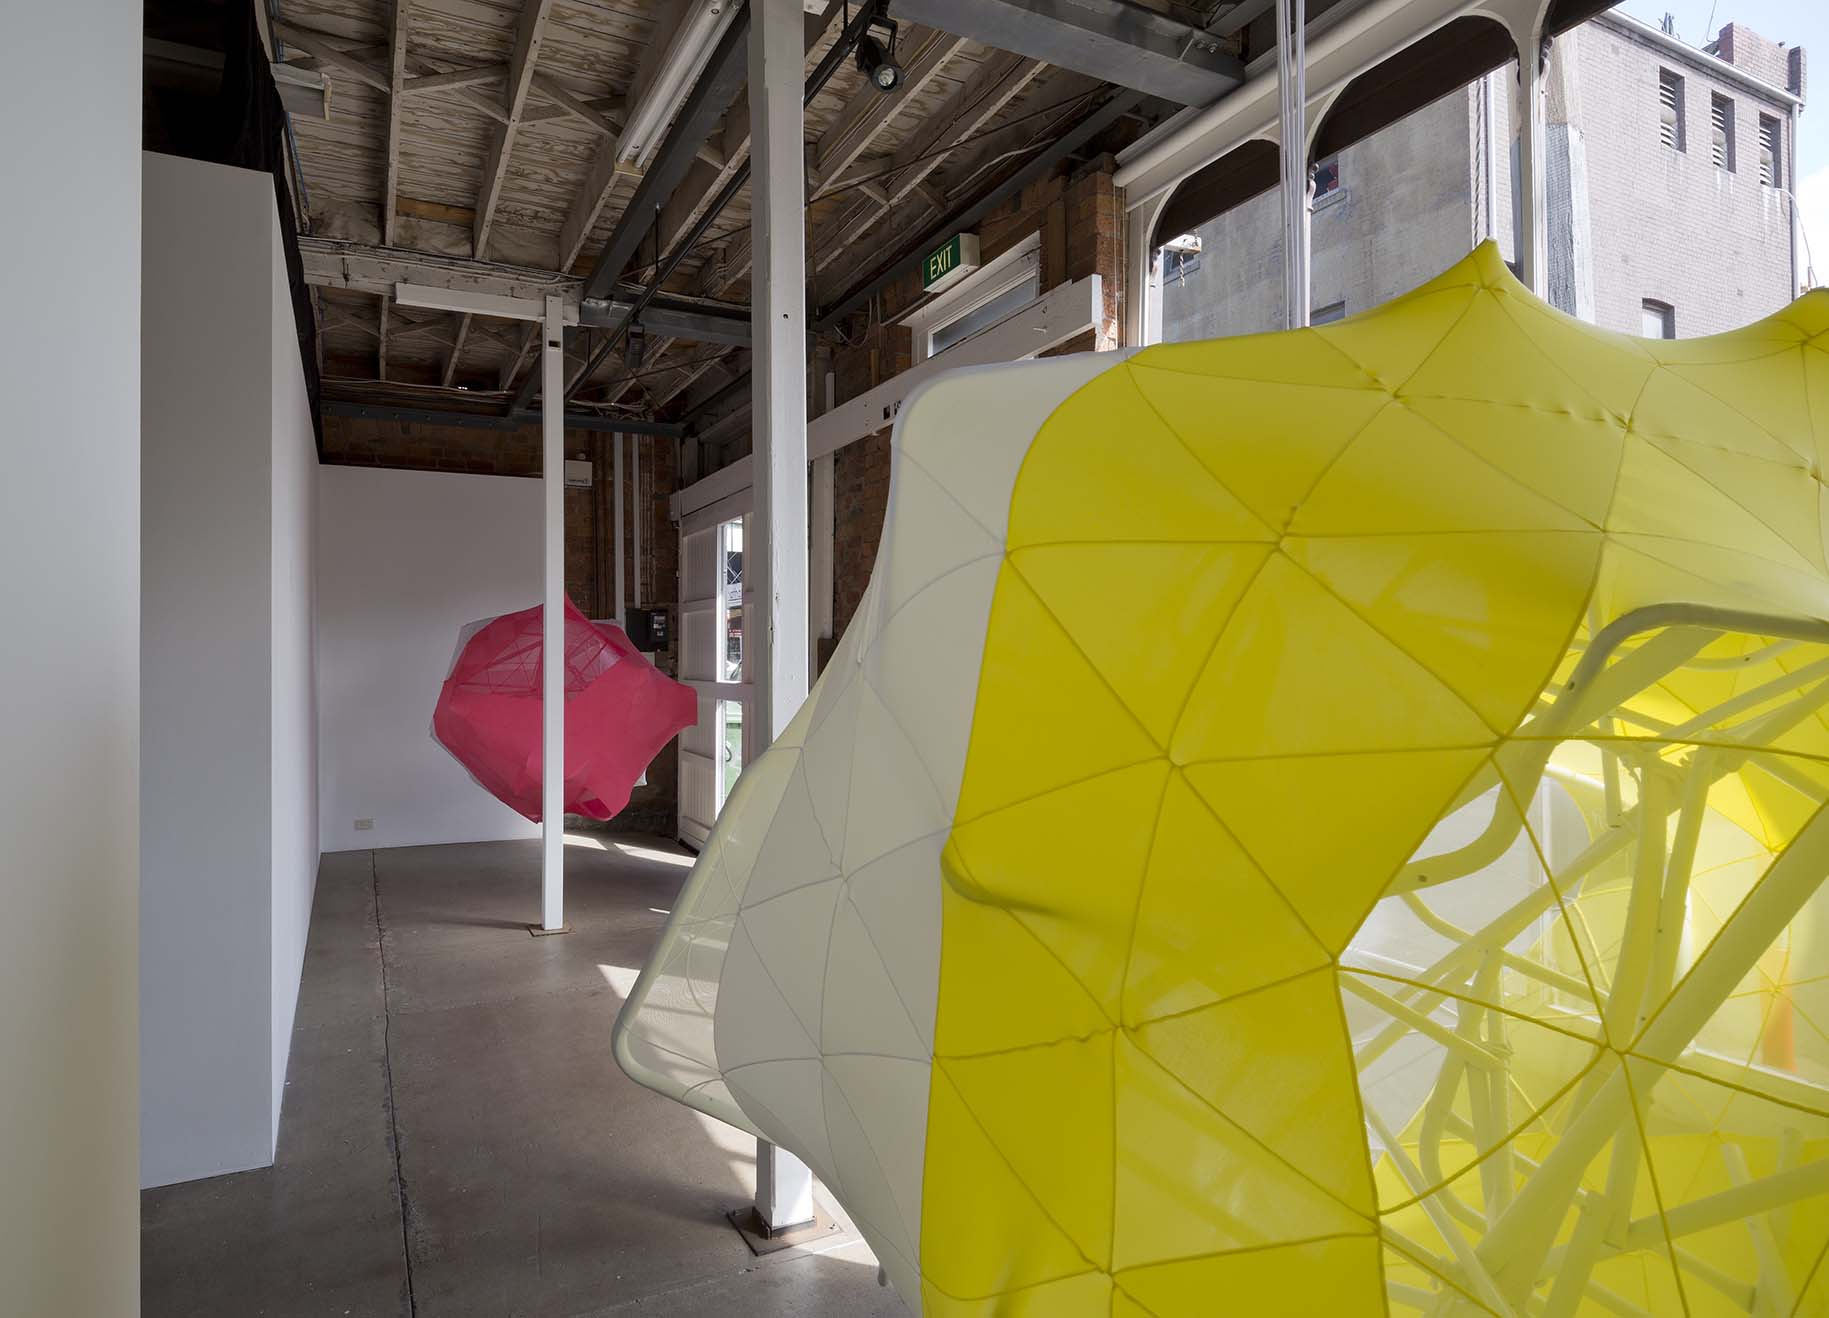 Melanie Irwin, Hemispherical Envelope, installation view